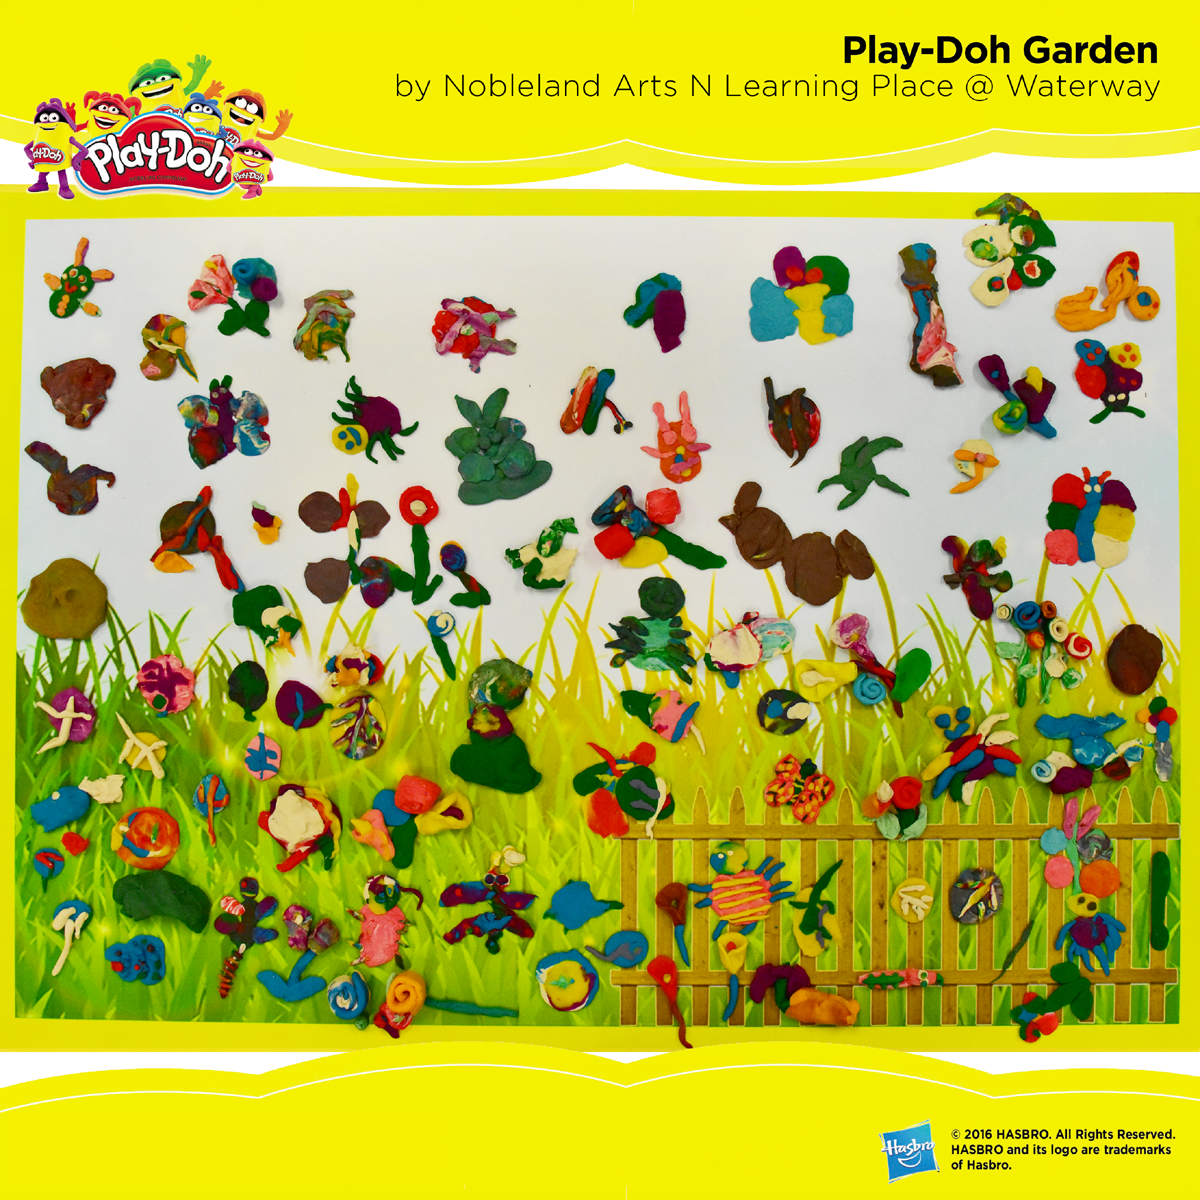 Play-Doh Garden by Nobleland Arts N Learning Place @ Waterway